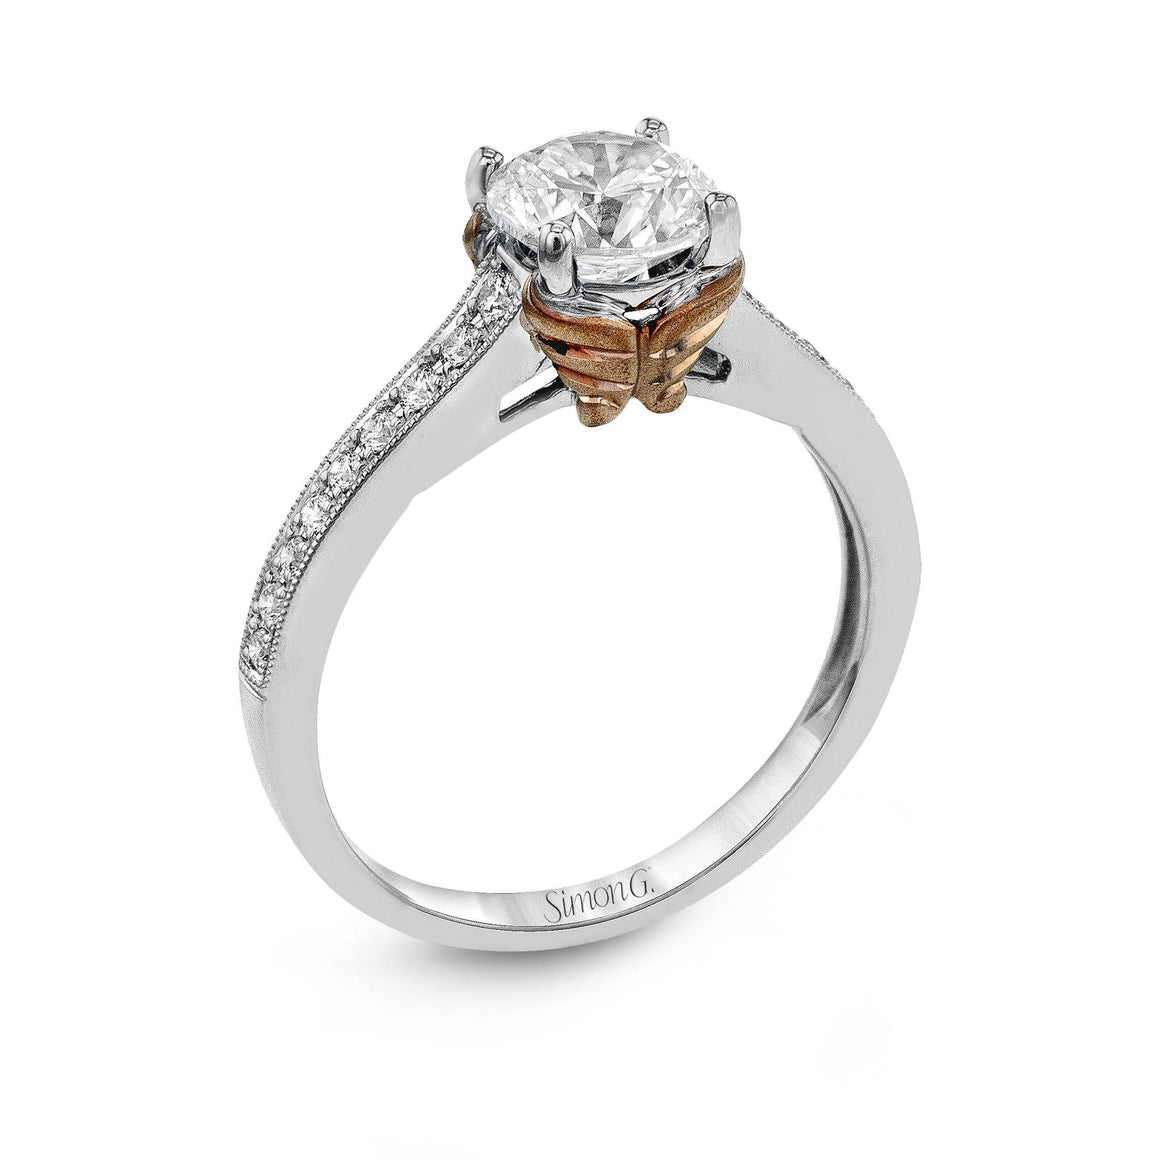 Simon G Simon G - NR493 Engagement Ring - Birmingham Jewelry